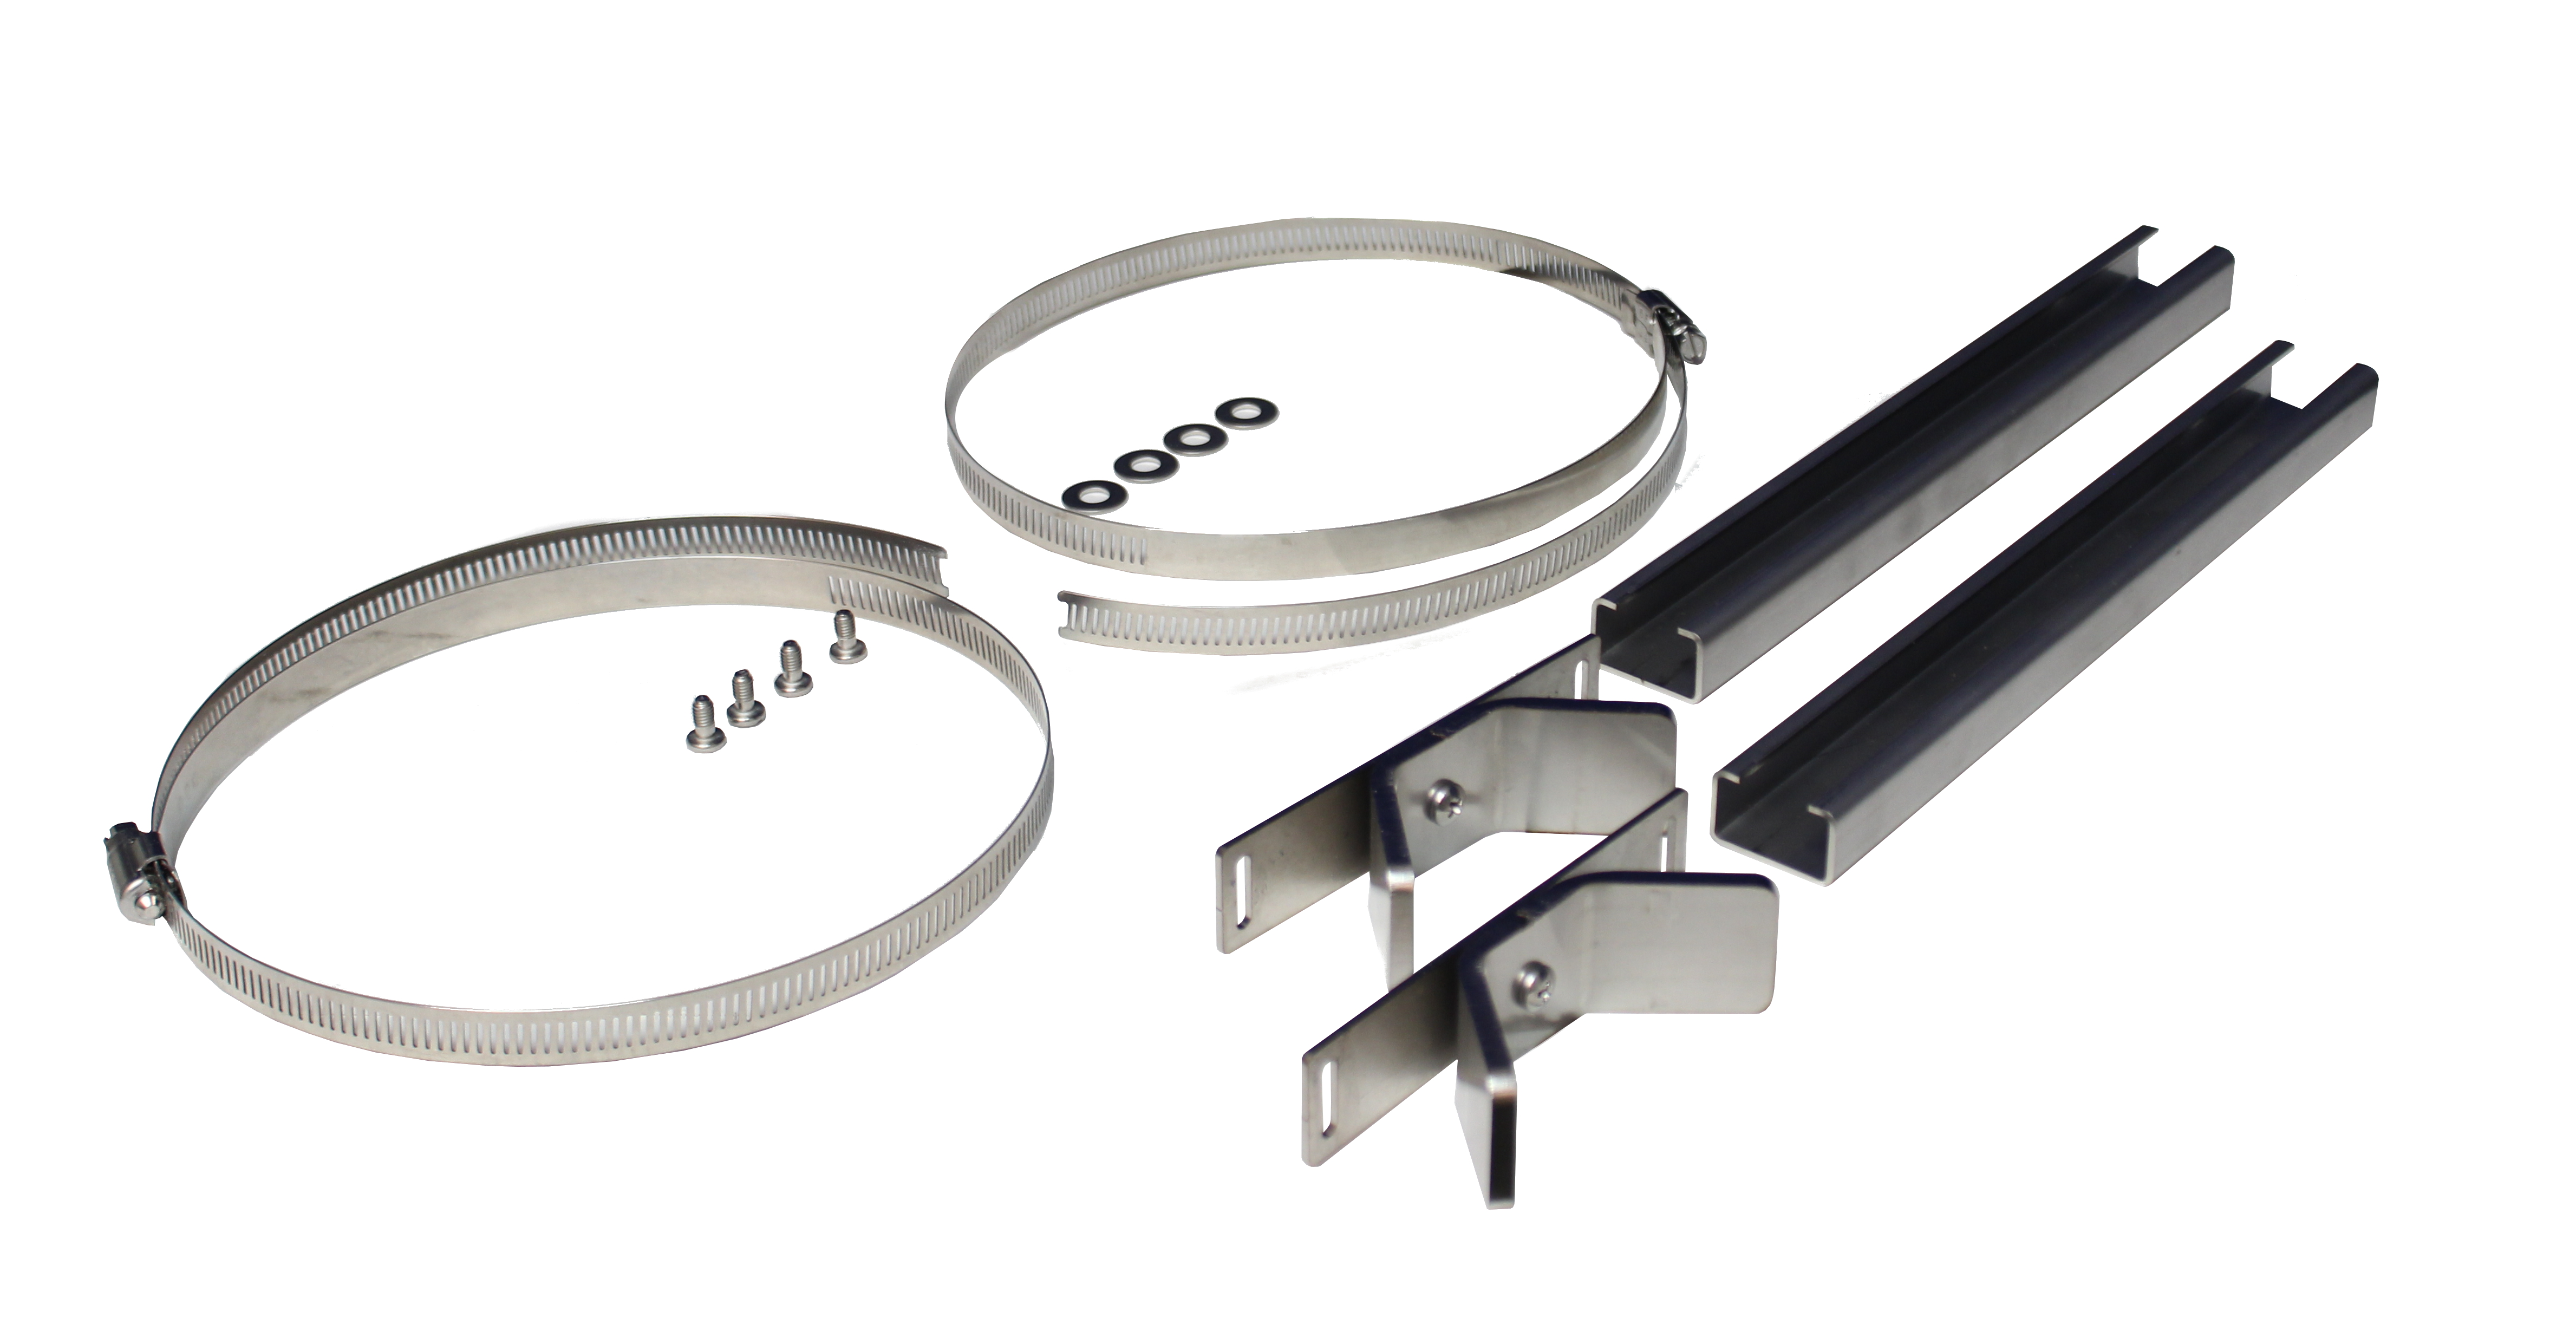 Enclsoure pole mount kit- has two stainless steel cable clamp, two stainless steel brackets and rails, four stainless steel screws and washers